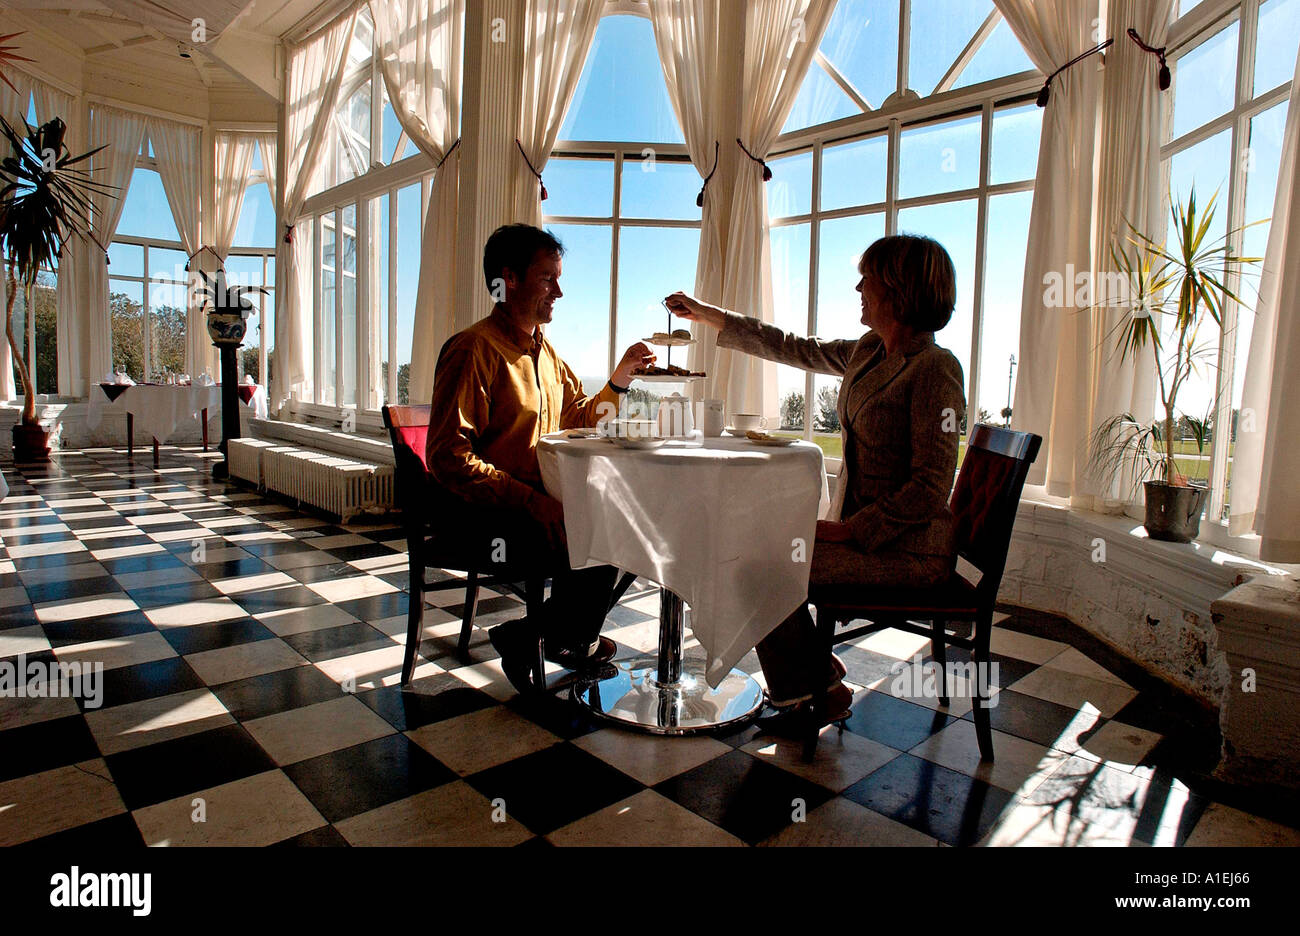 Tea for two at a grand old seaside hotel - Stock Image